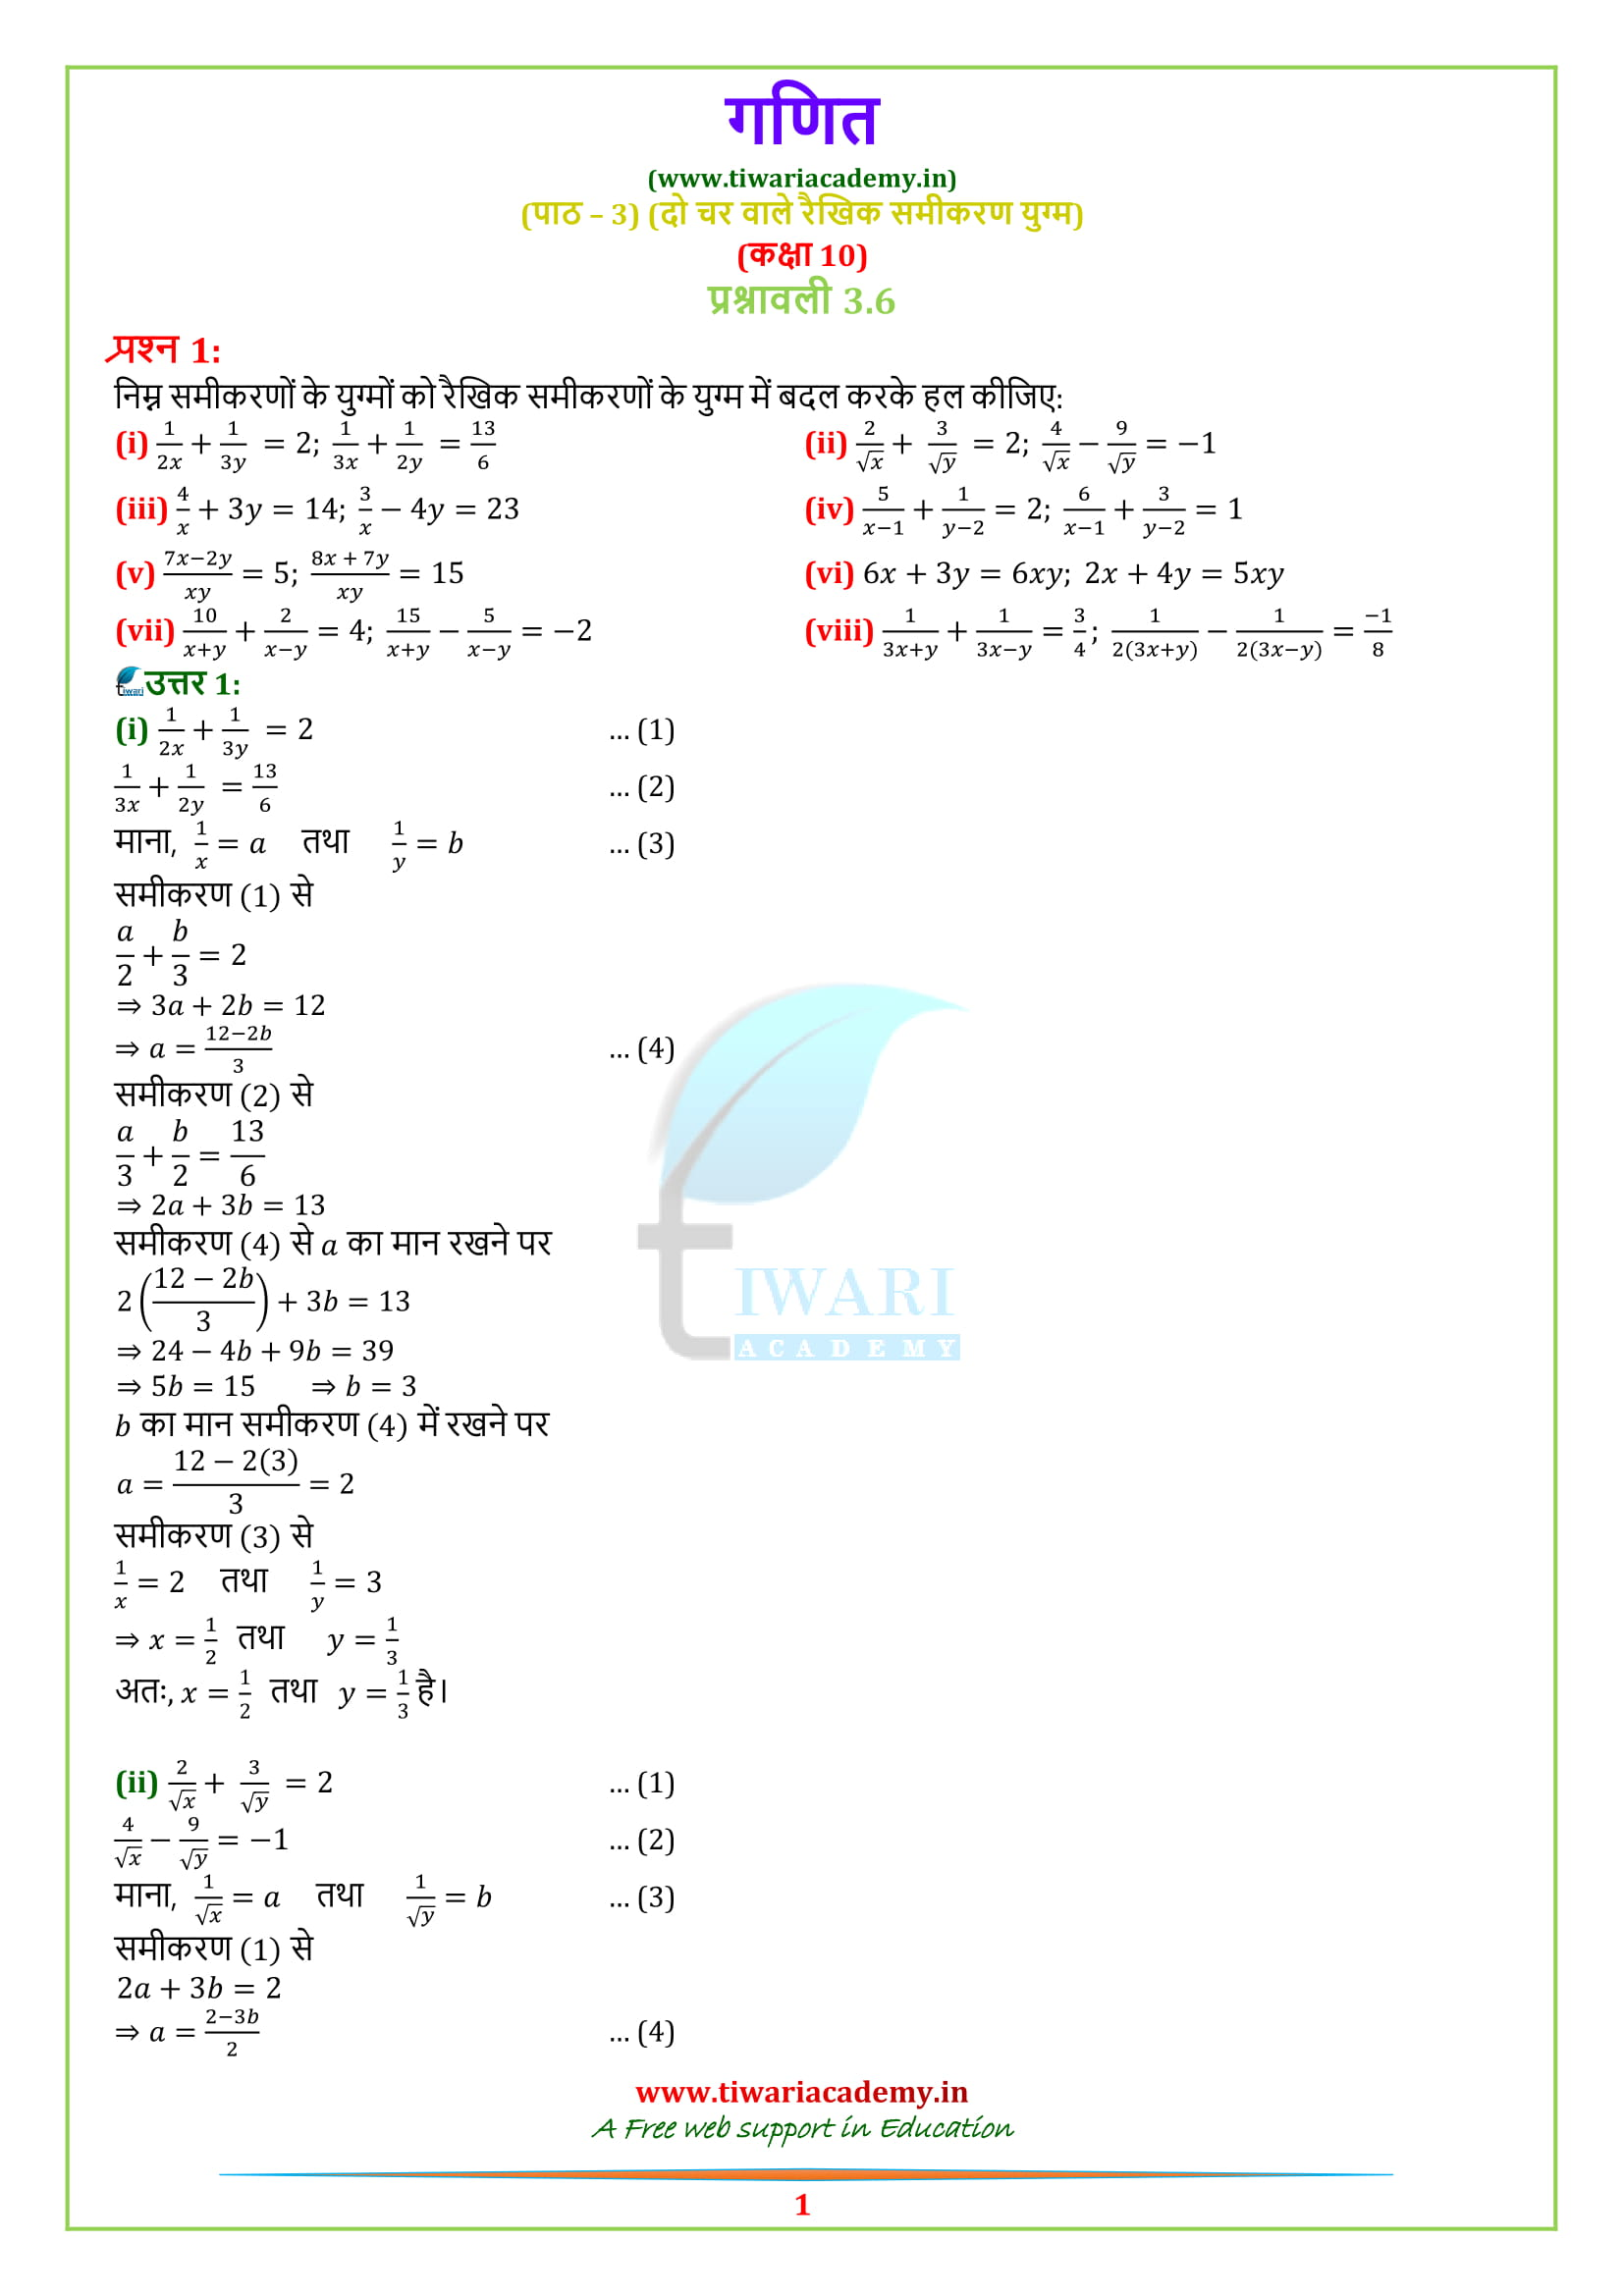 10 Maths exercise 3.6 question 1 in hindi